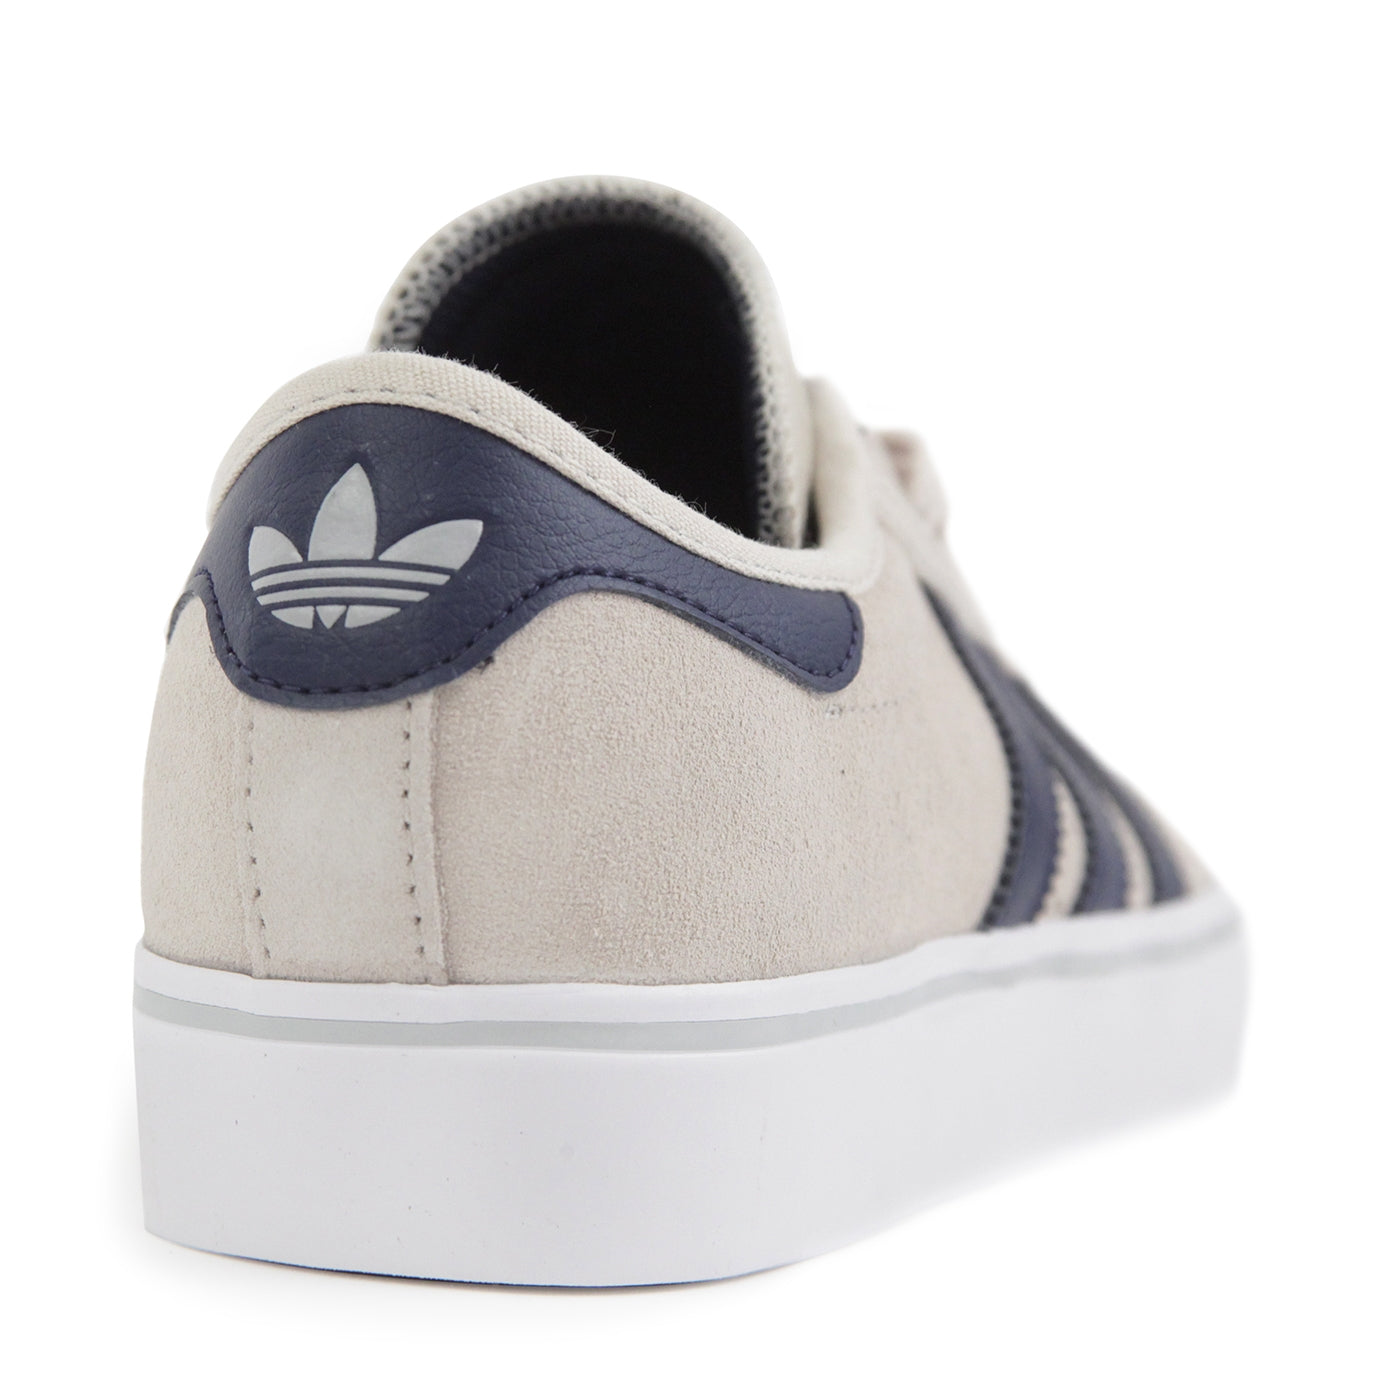 super popular a79e3 85ee7 Adidas Skateboarding Adi Ease Premiere ADV Shoes - Clear Brown   Collegiate  Navy   Footwear White. Size Charts